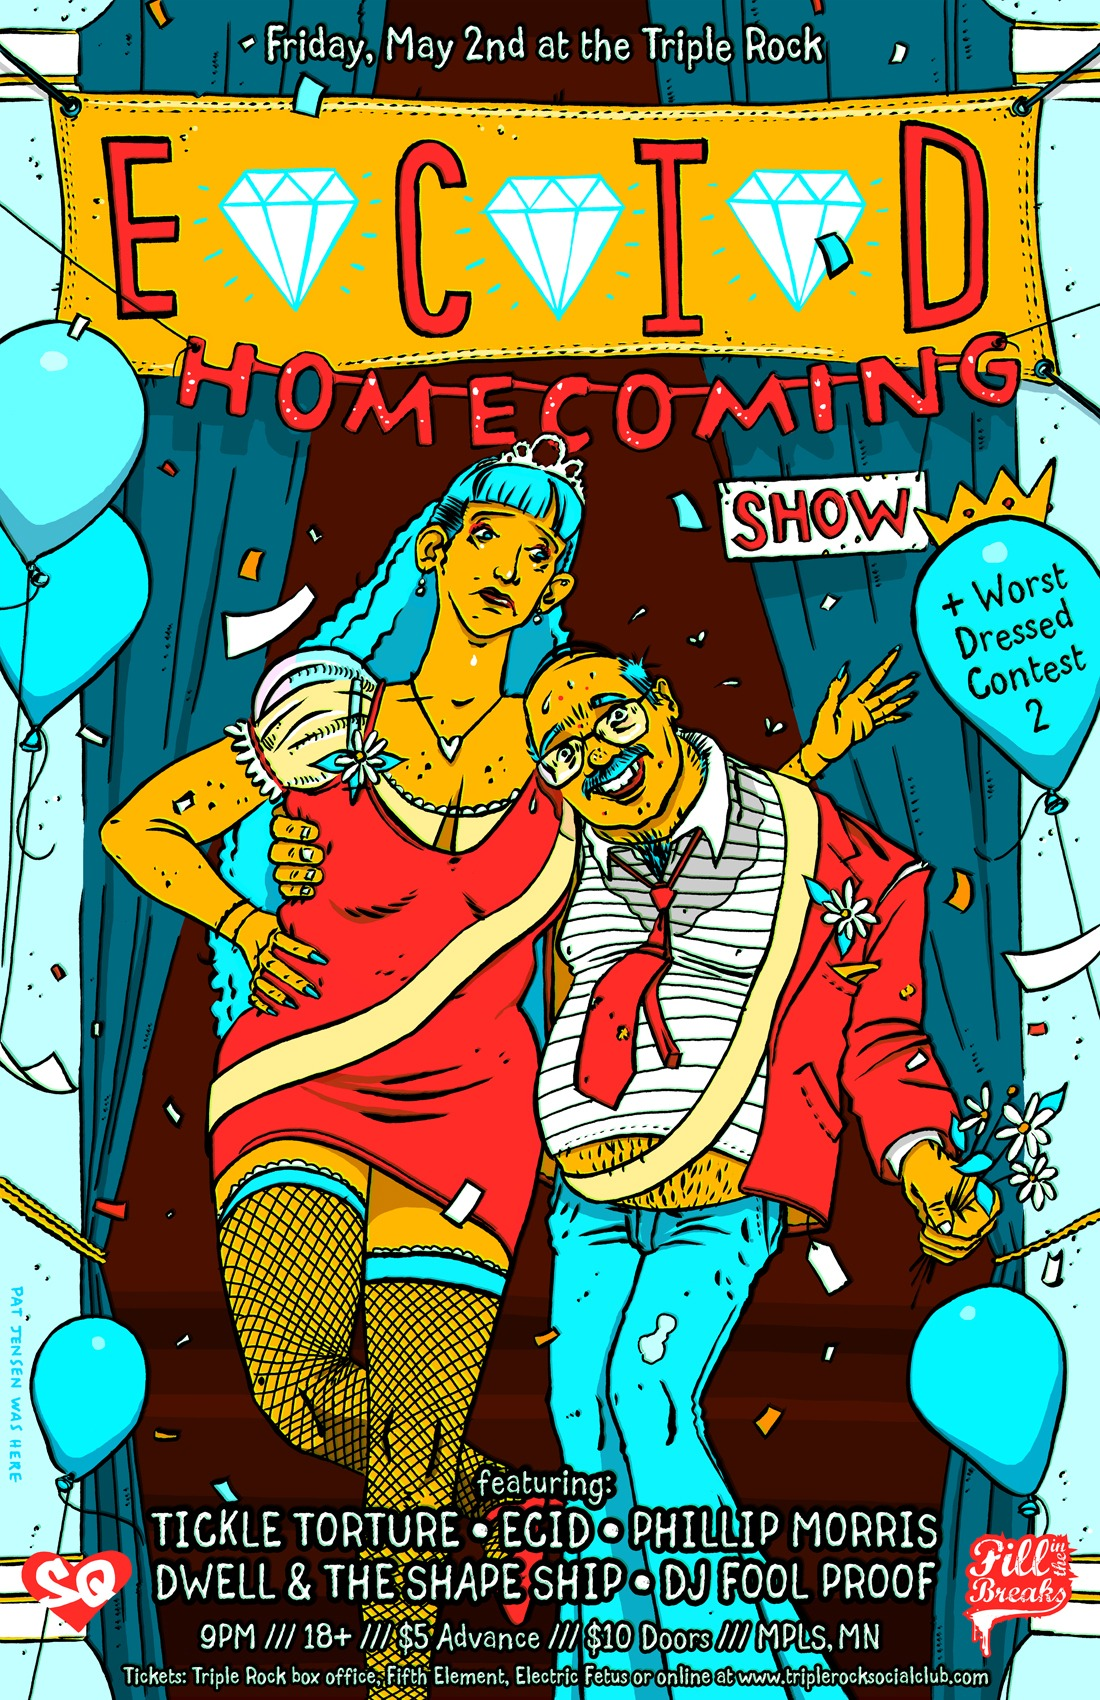 "After a month and half on the road I had to throw a homecoming party. This is one of my favorite line-up's I've put together in a while. The mixture of rap and pop and blues is exciting. If you haven't heard of some of these guys, check em out.  As far as the ""Worst Dressed Contest 2"" goes. We will have a few ""celebrity"" judges crowning our king and queen. With swag provided by Sexy Quality and taco bell provided by yours truly. This is like the pre-soundset warm-up. I will be in tour shape and plan to murder shit. Let's party SHOUT OUT TO PAT JENSEN FOR THE AMAZING POSTER ART!"